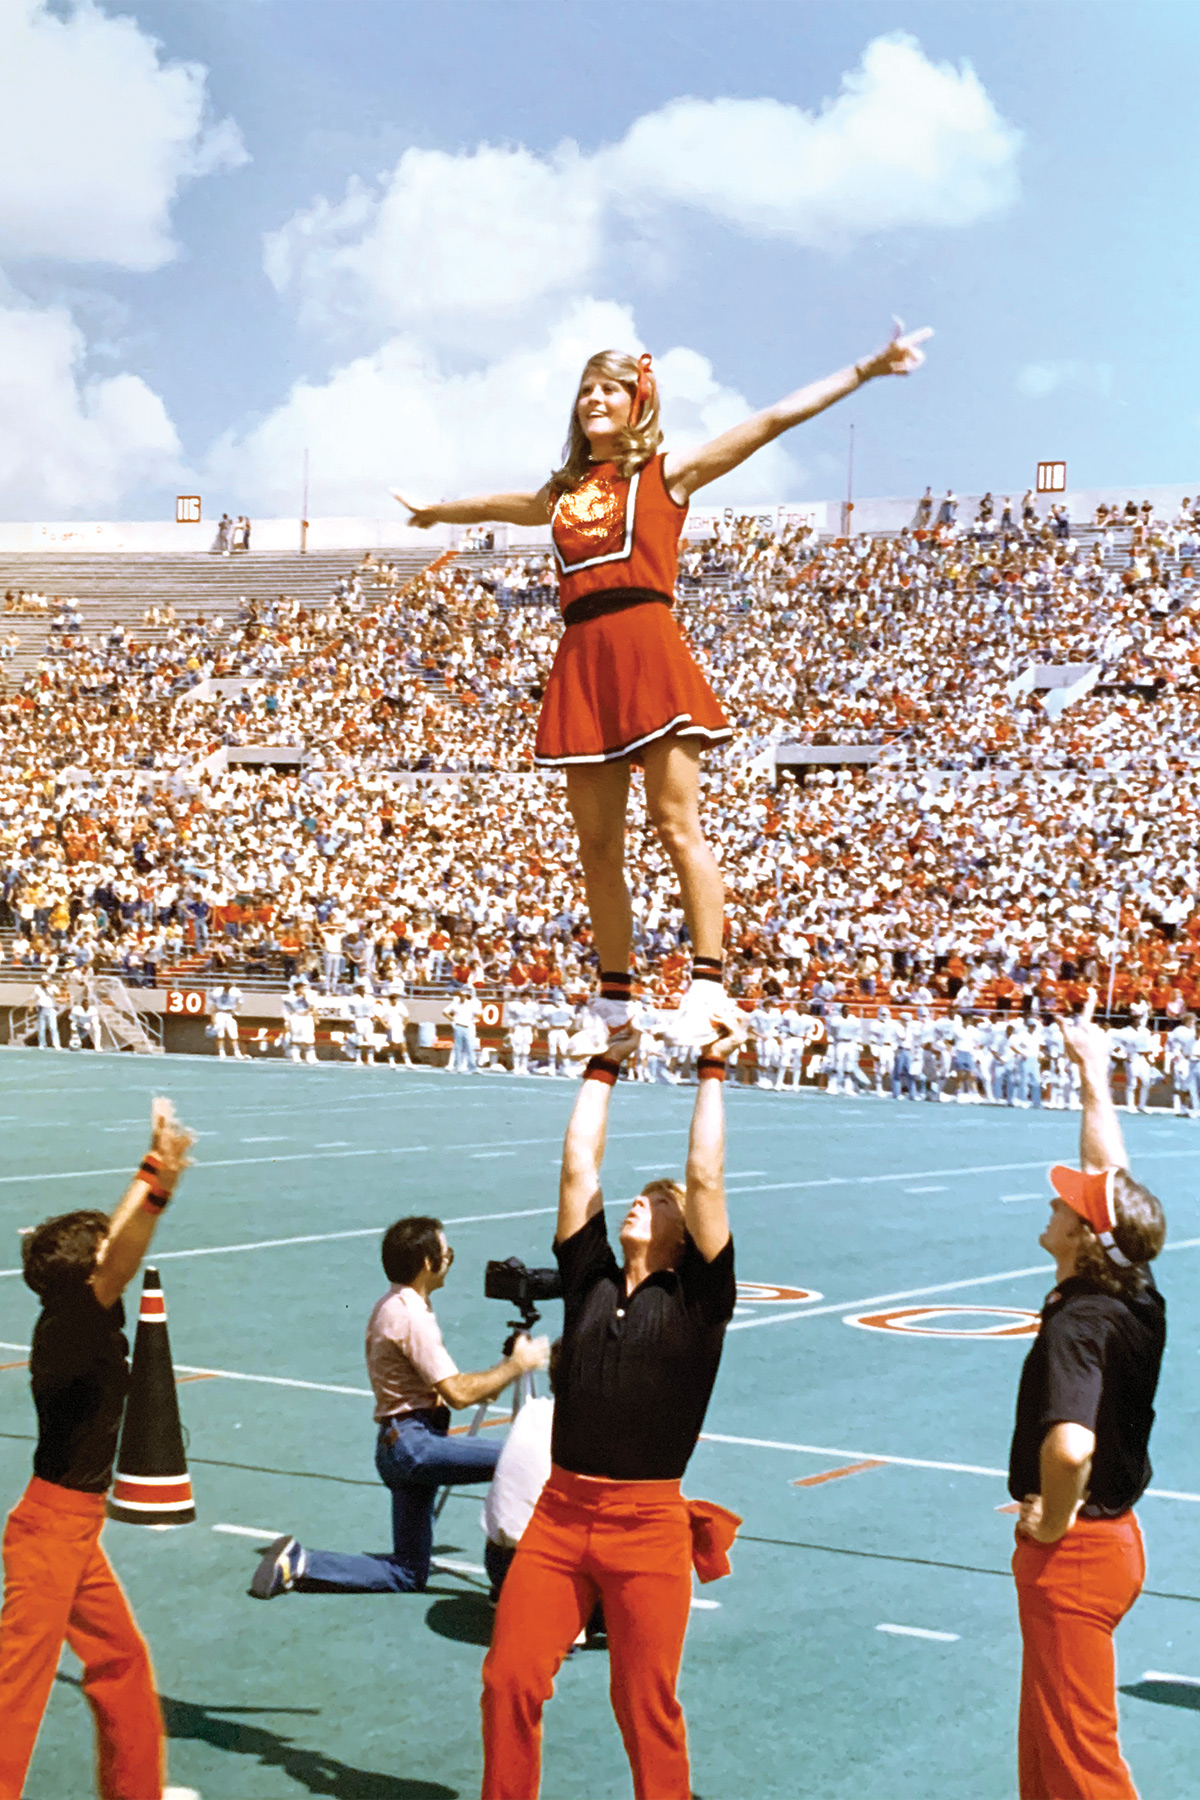 Kim Butler, college cheerleader at Texas Tech University